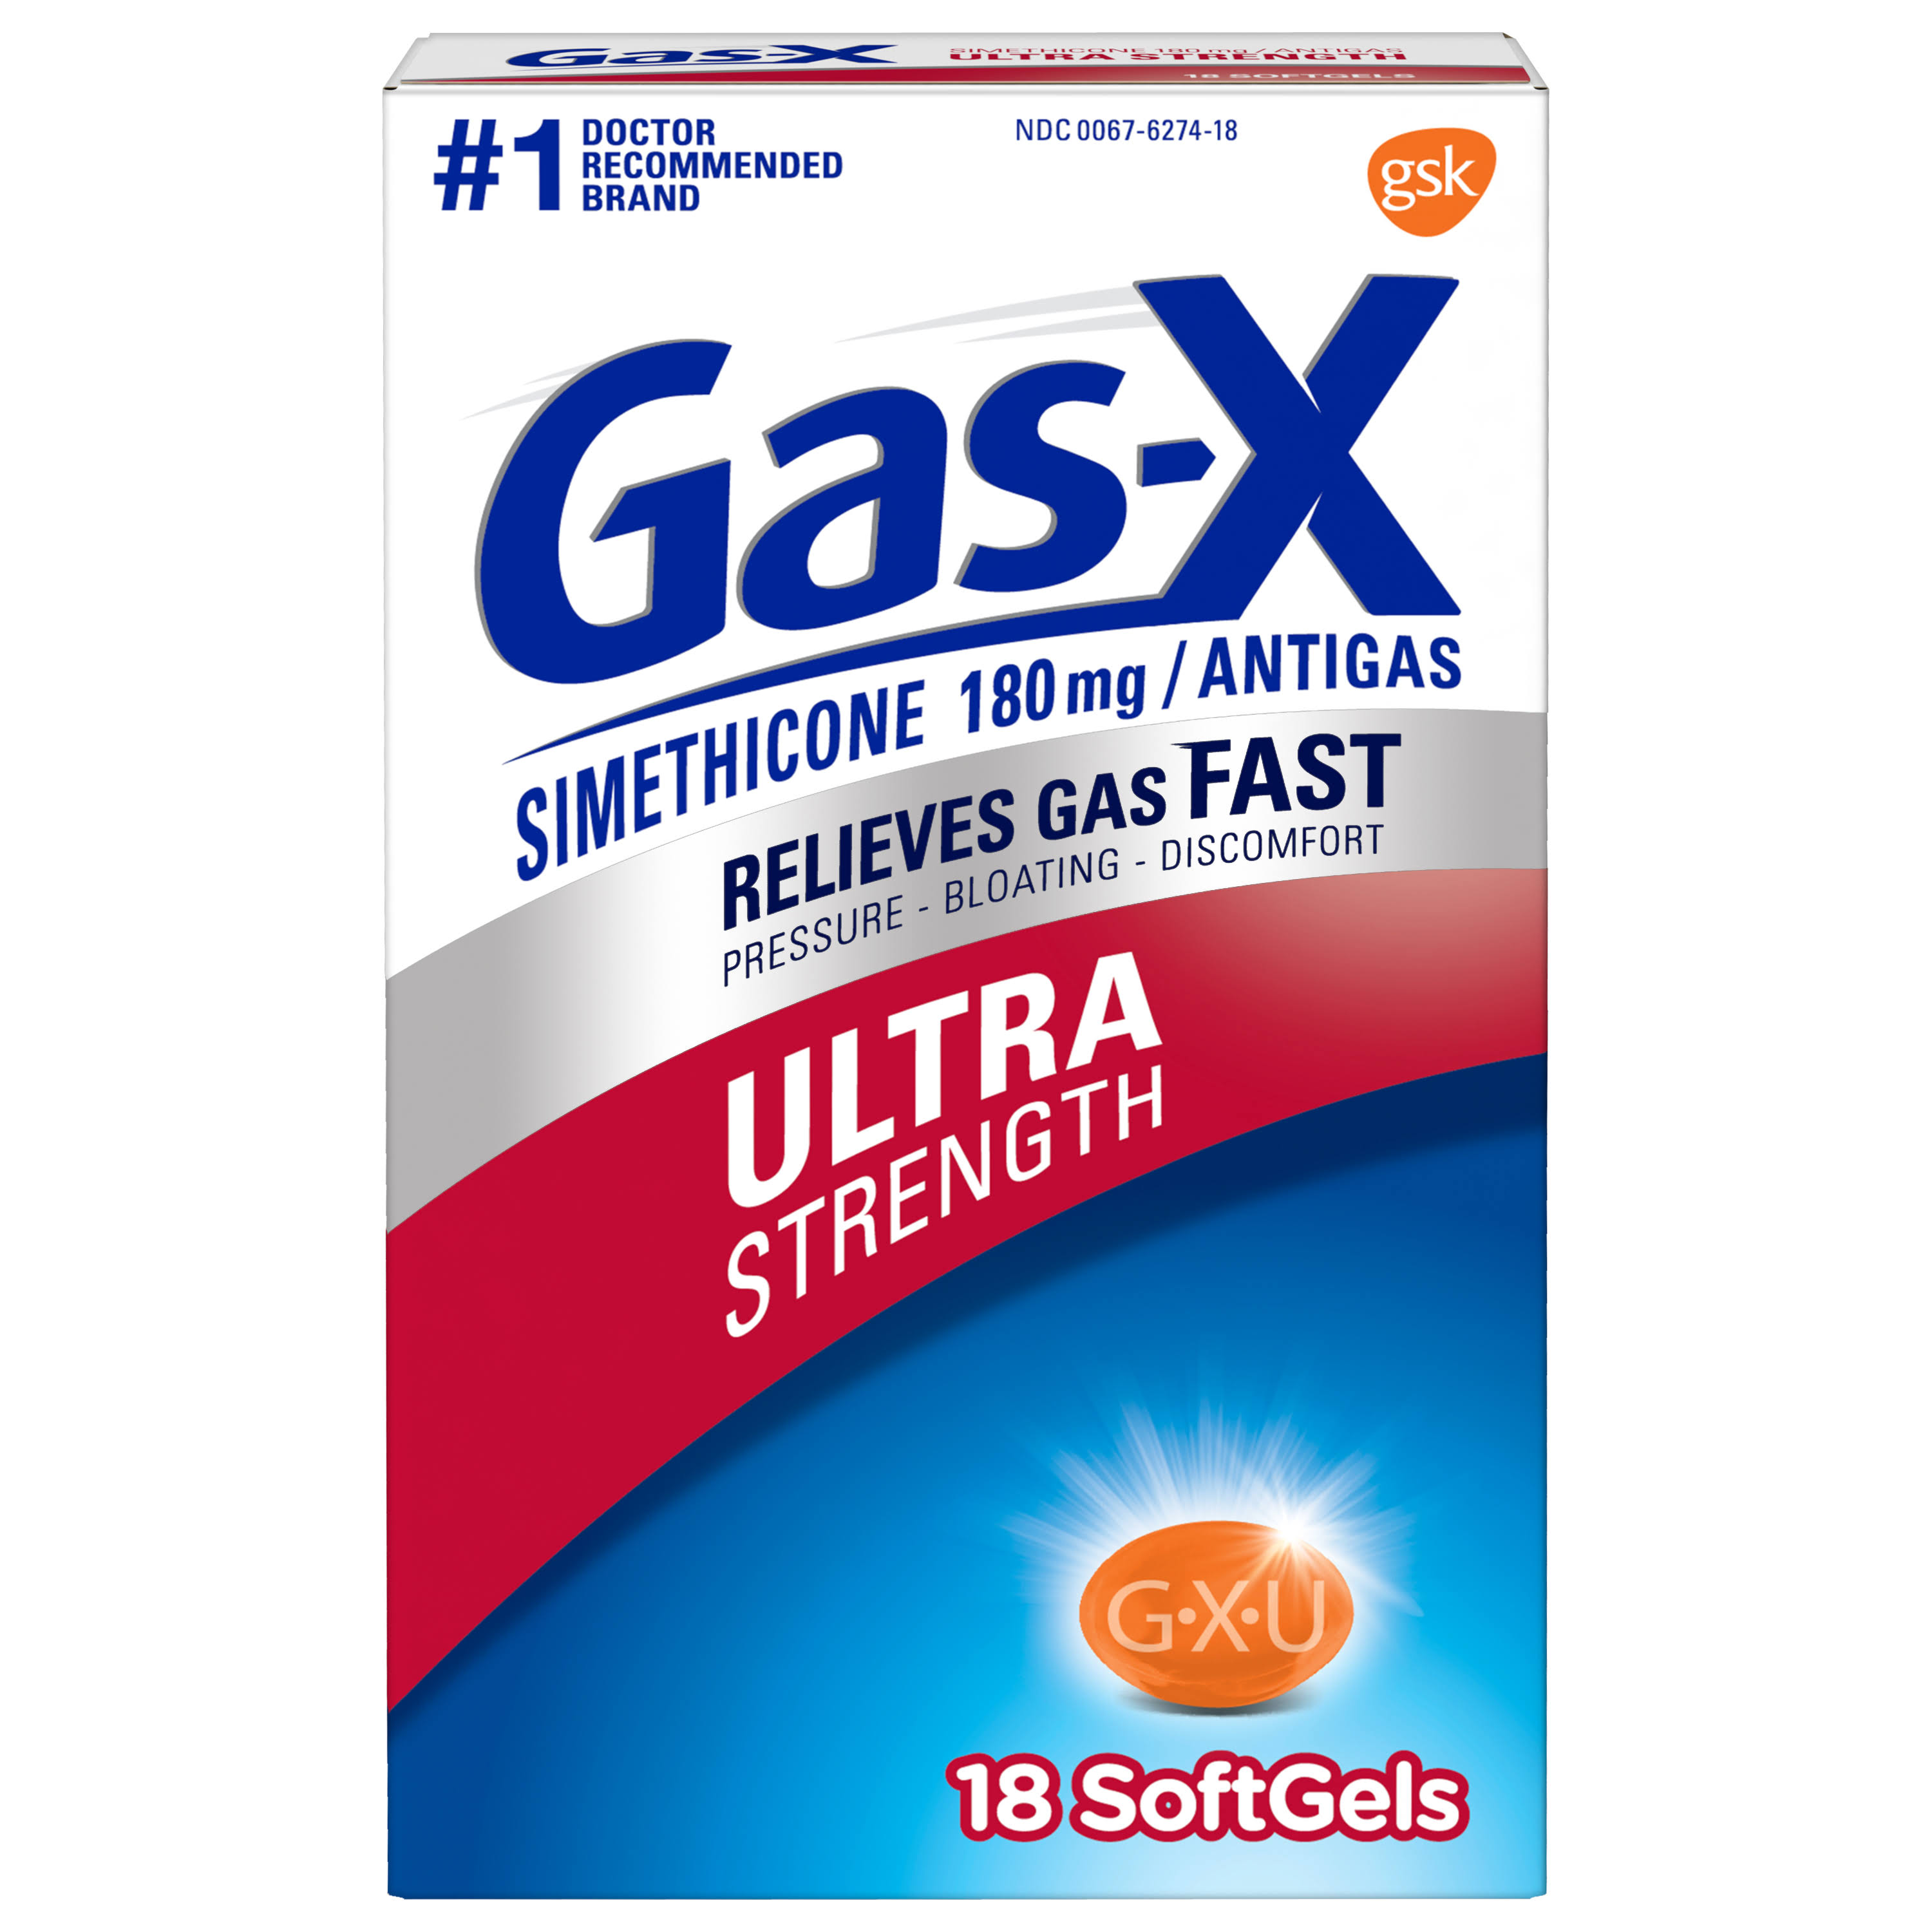 Gsk Gas-X Gas Ultra Strength Simethicone/Antigas Softgels 180 mg - 18 Pack